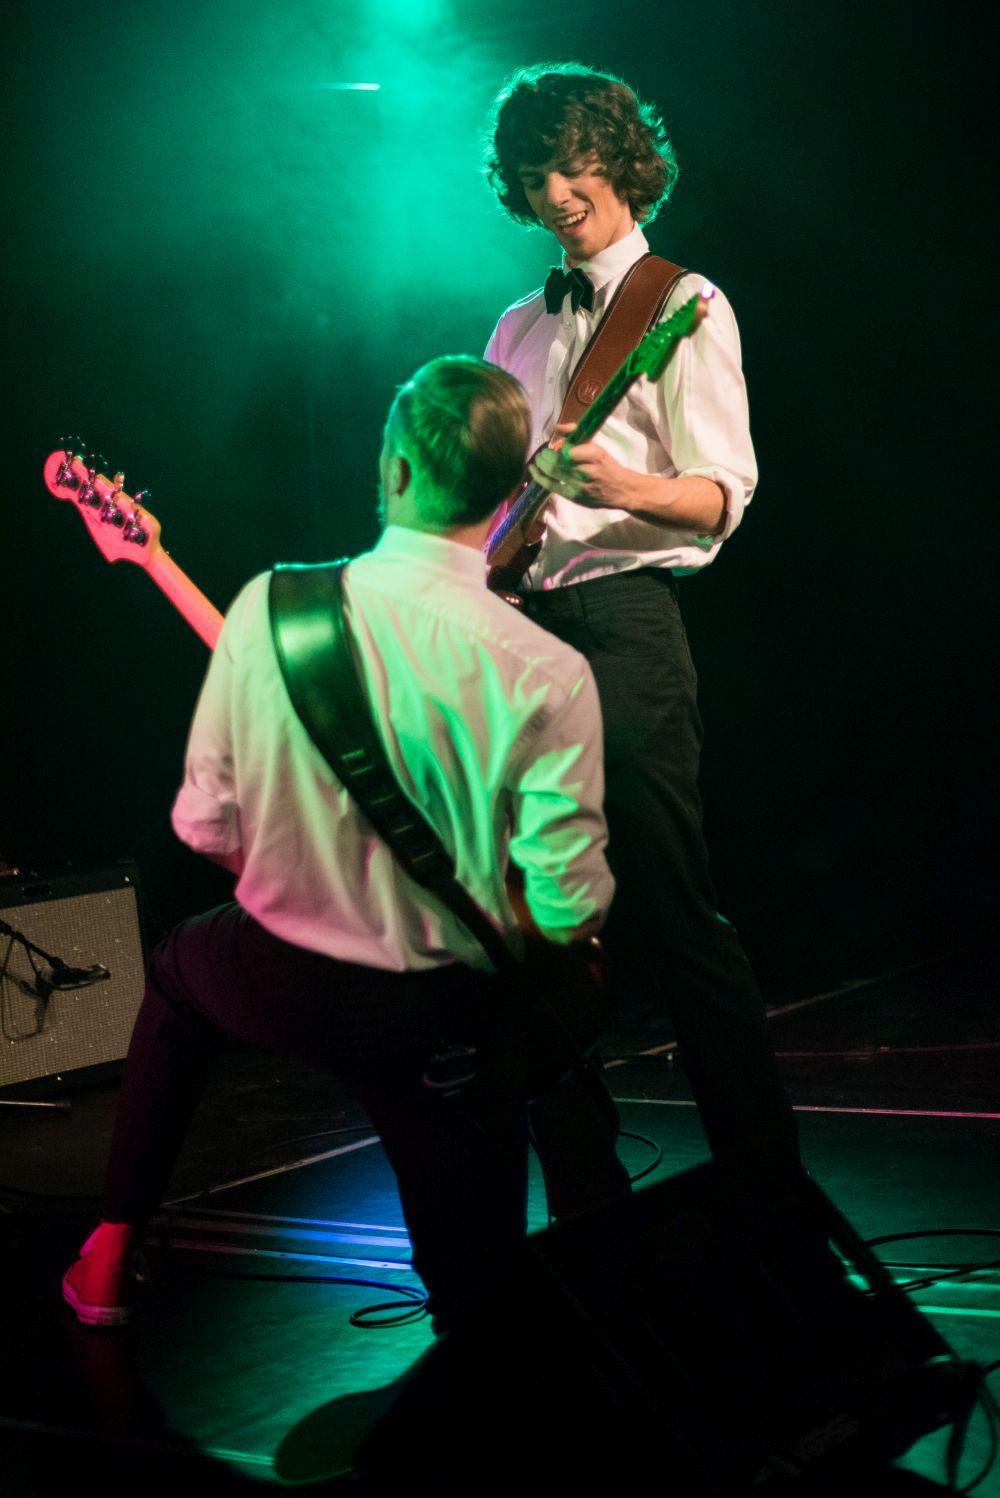 Coverband Eventband Partyband in Magdeburg buchen